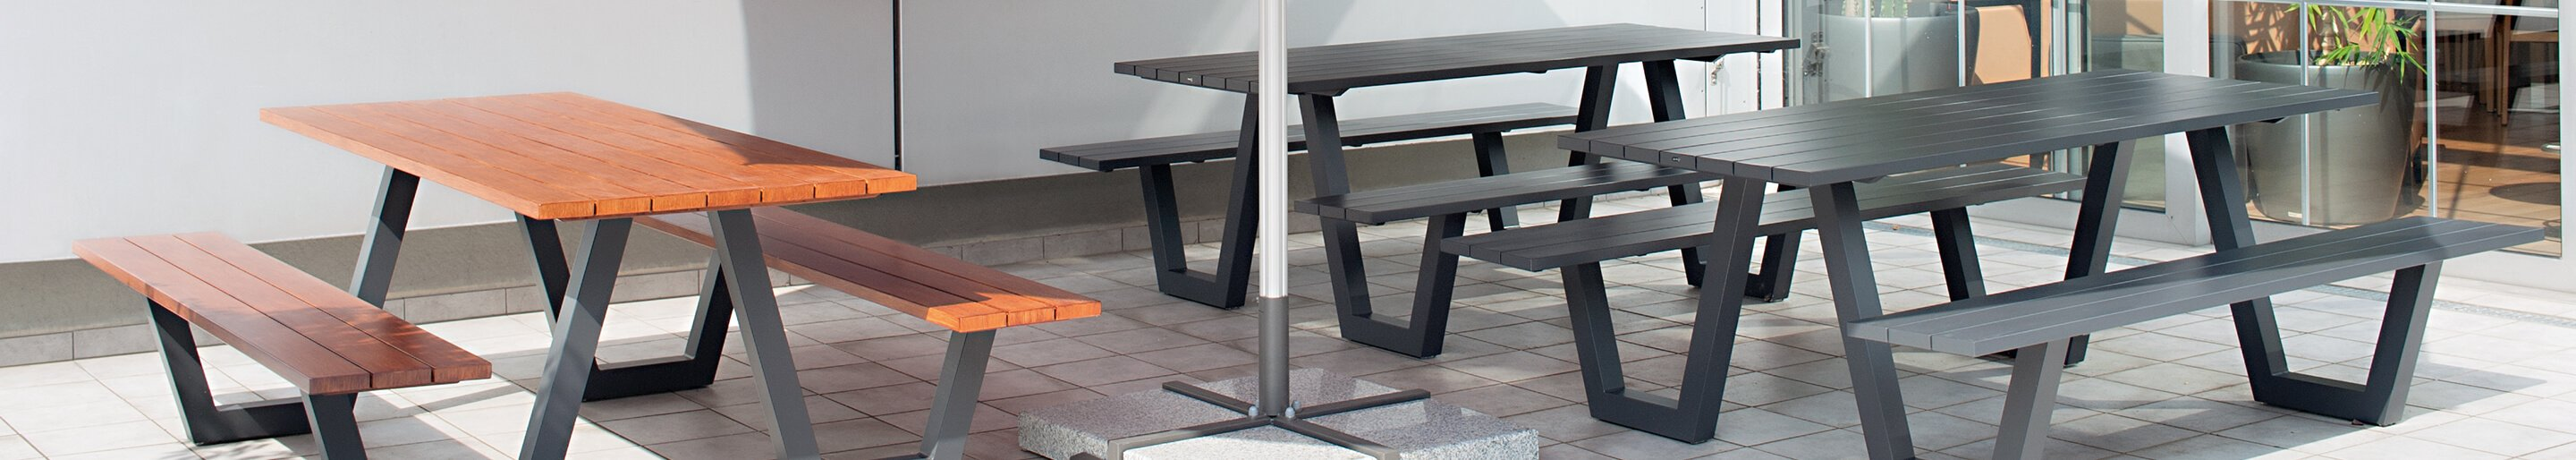 Outdoor Table-Bench-Combinations for your restaurant or hotel